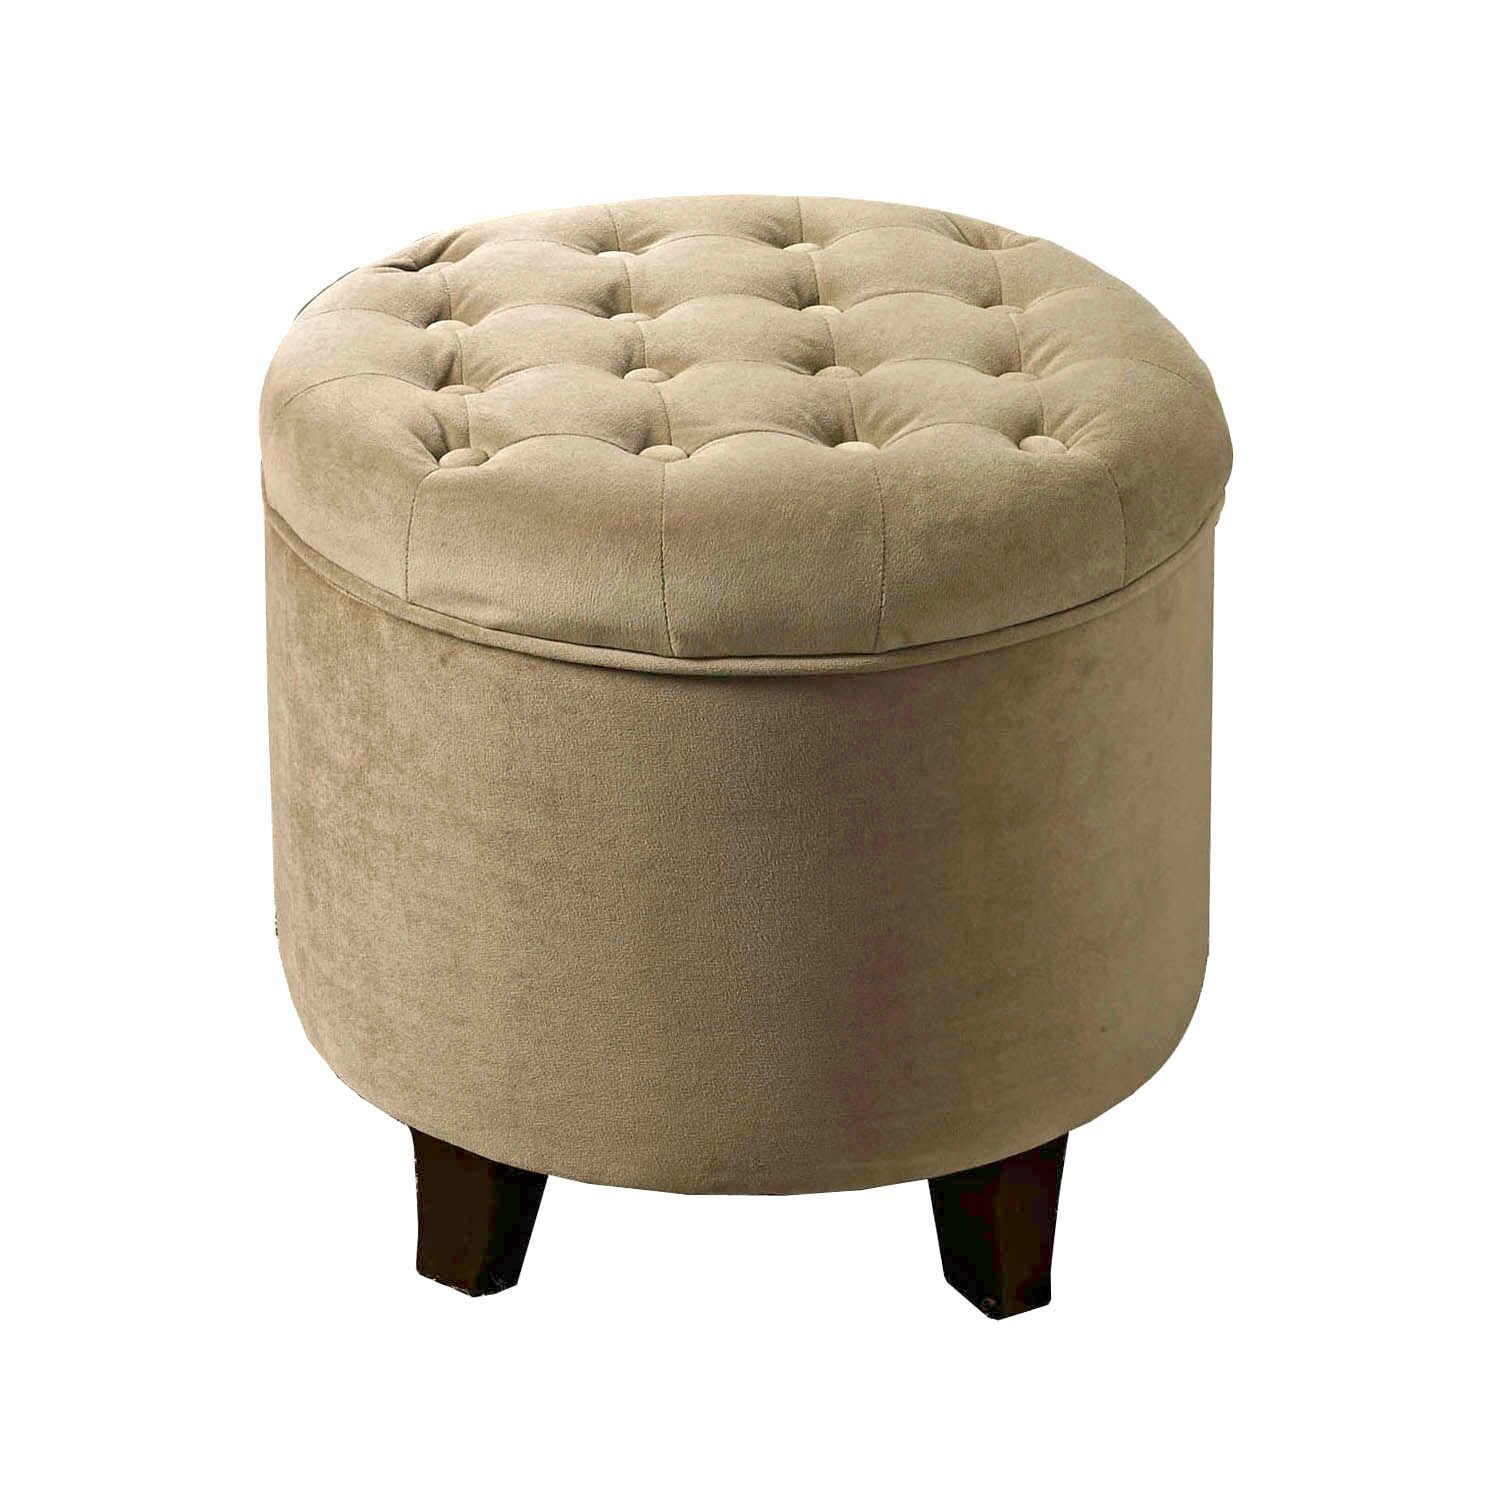 HomePop K6171-B119 Velvet Button Tufted Round Storage Ottoman with Removable Lid, 19